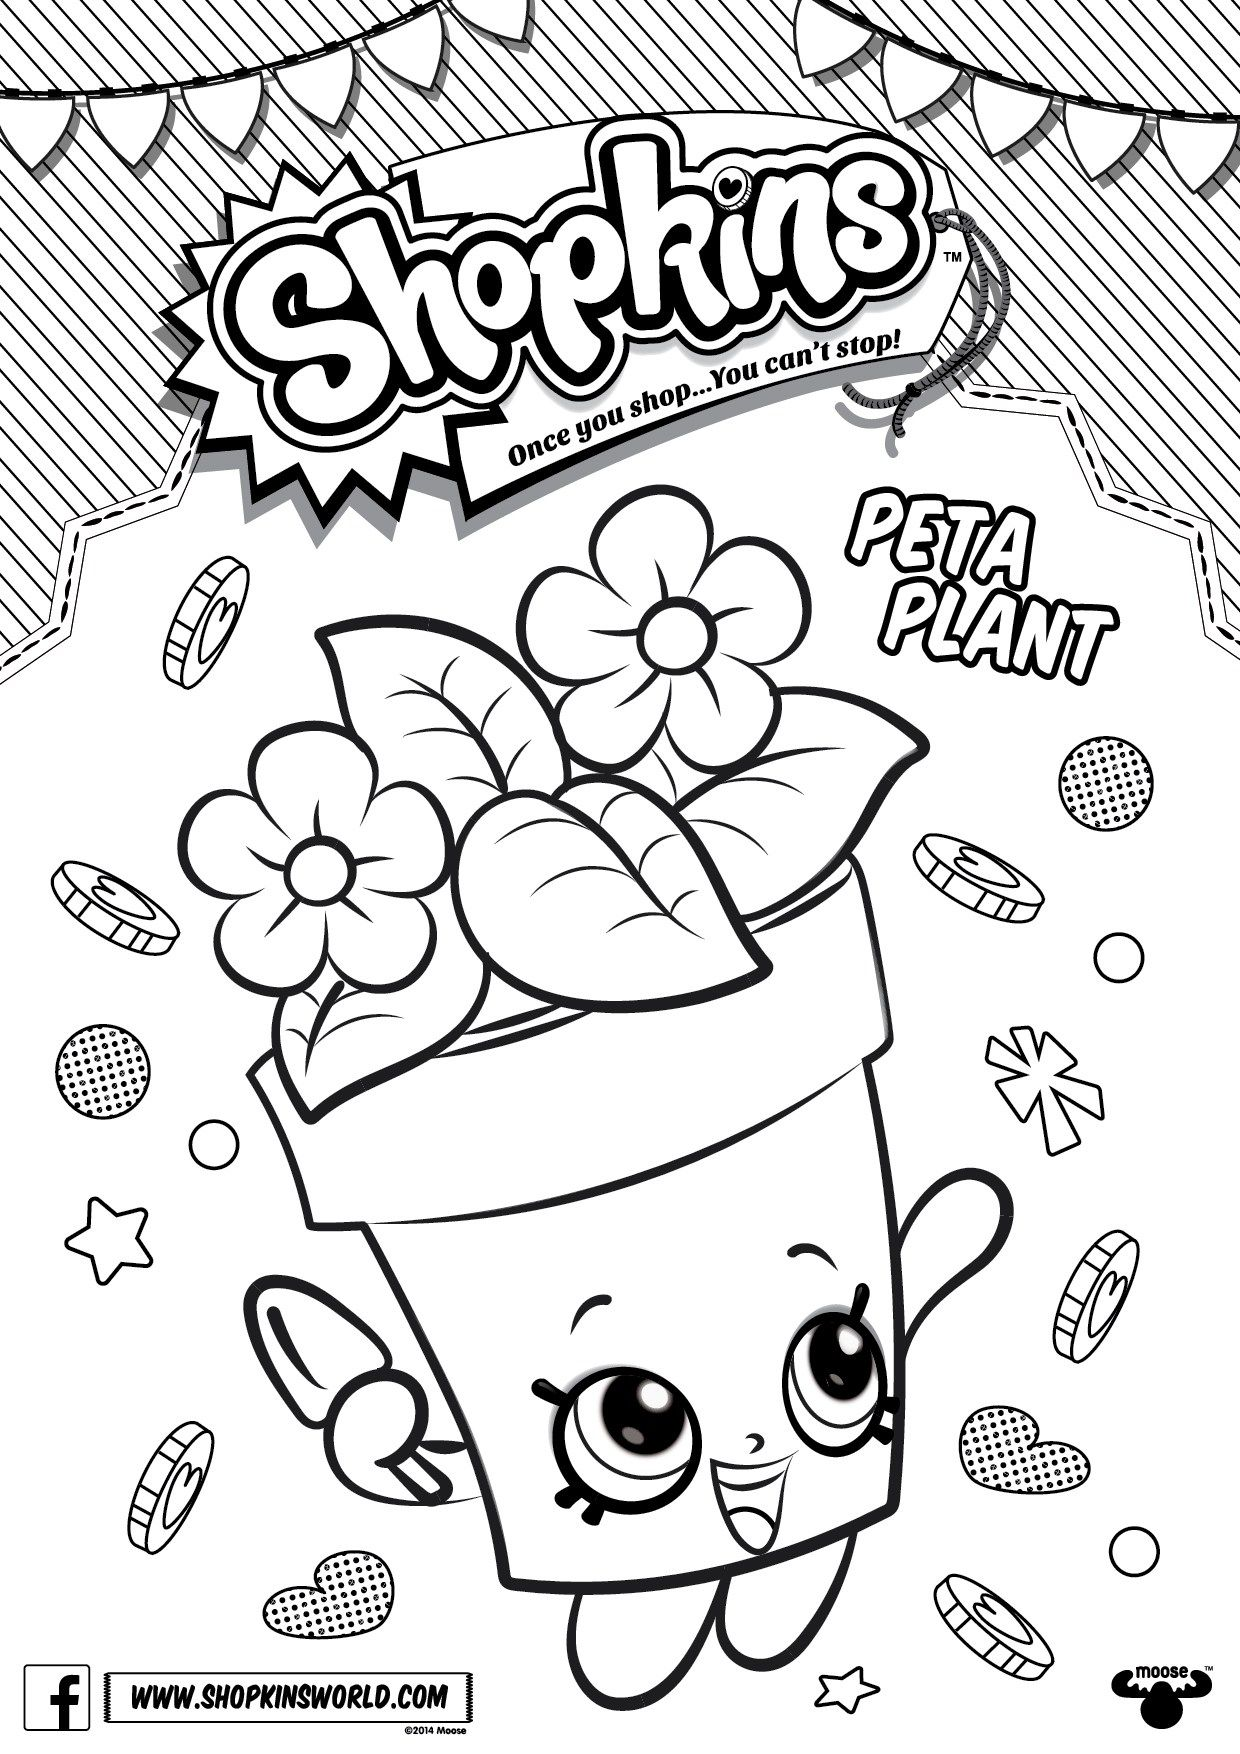 Christmas Coloring Pages Shopkins With Season 4 Peta Plant Printables Pinterest